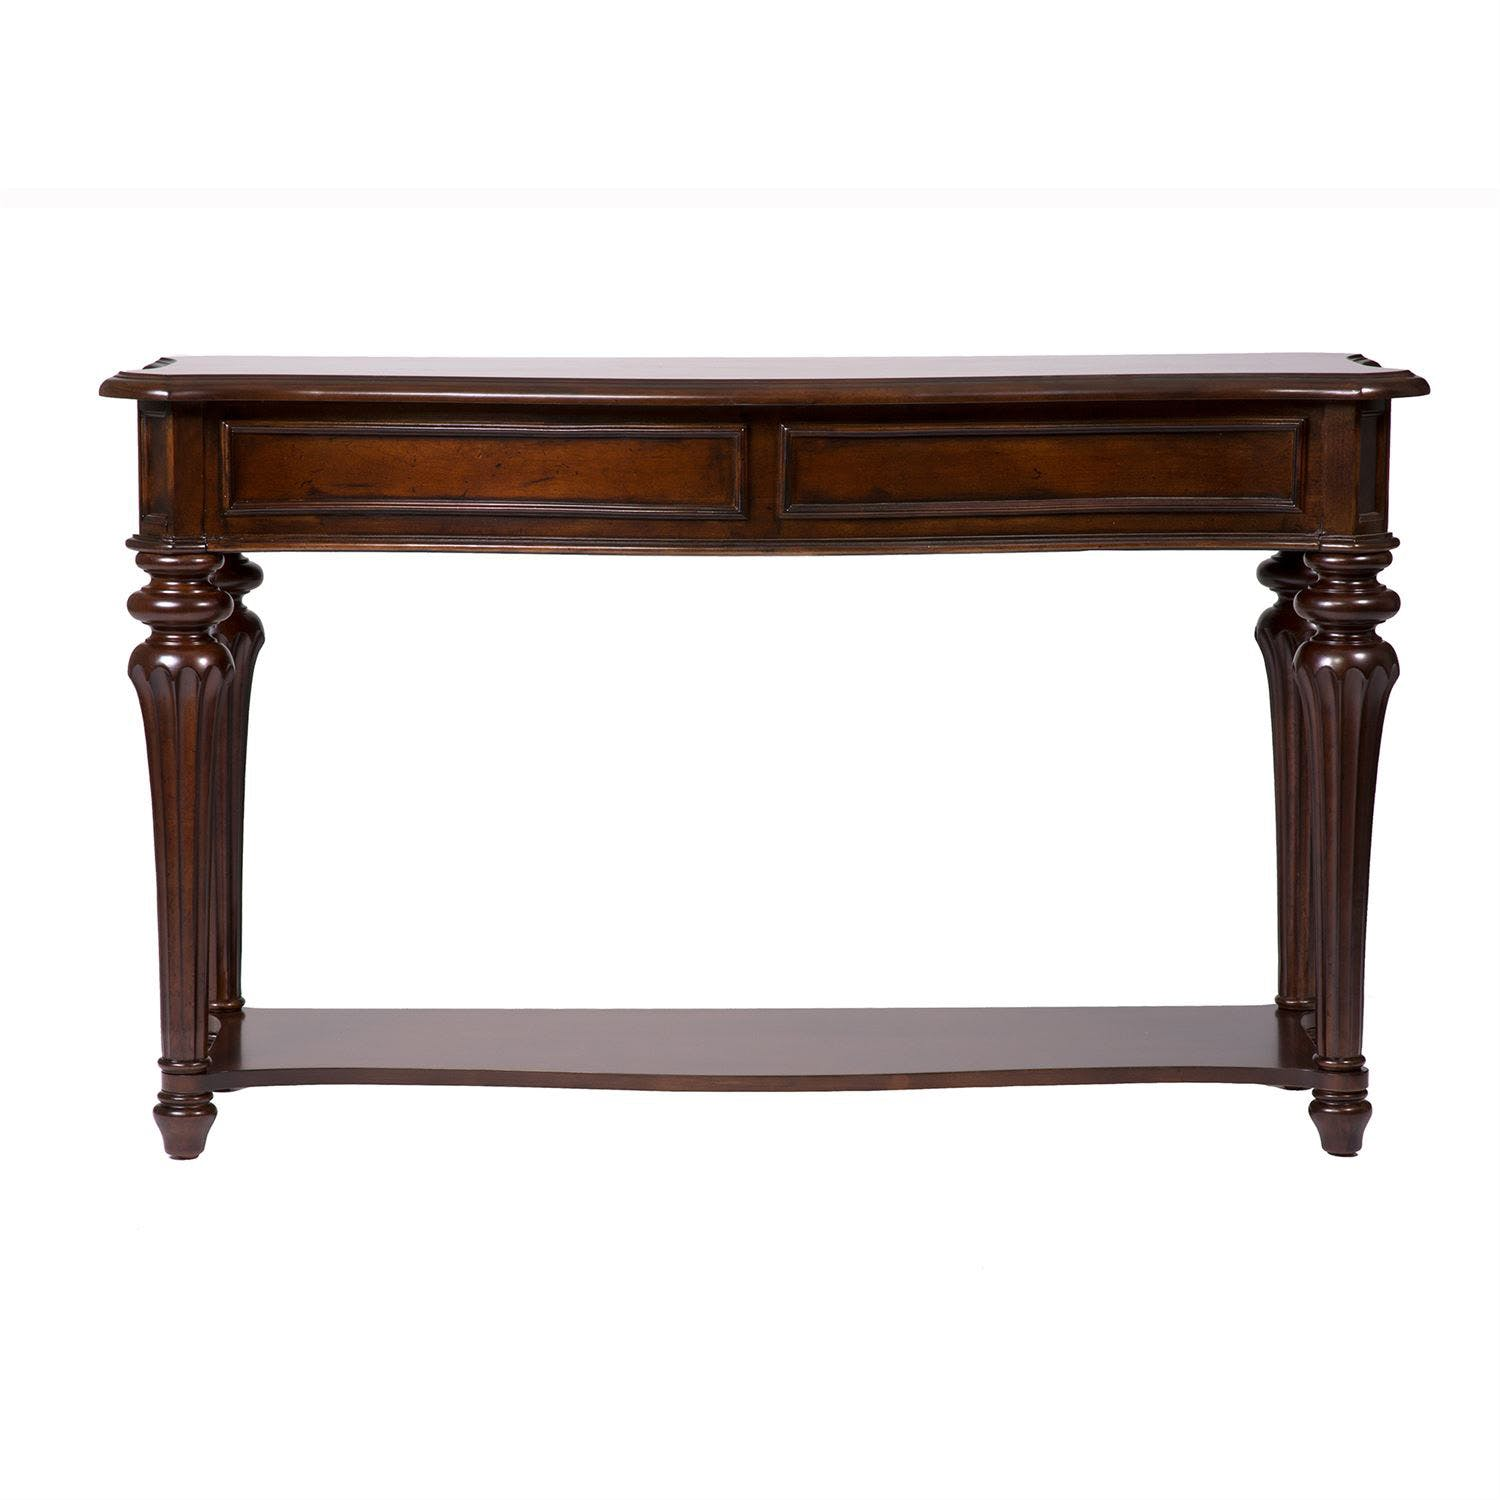 Danbury Sofa Table ST:511930